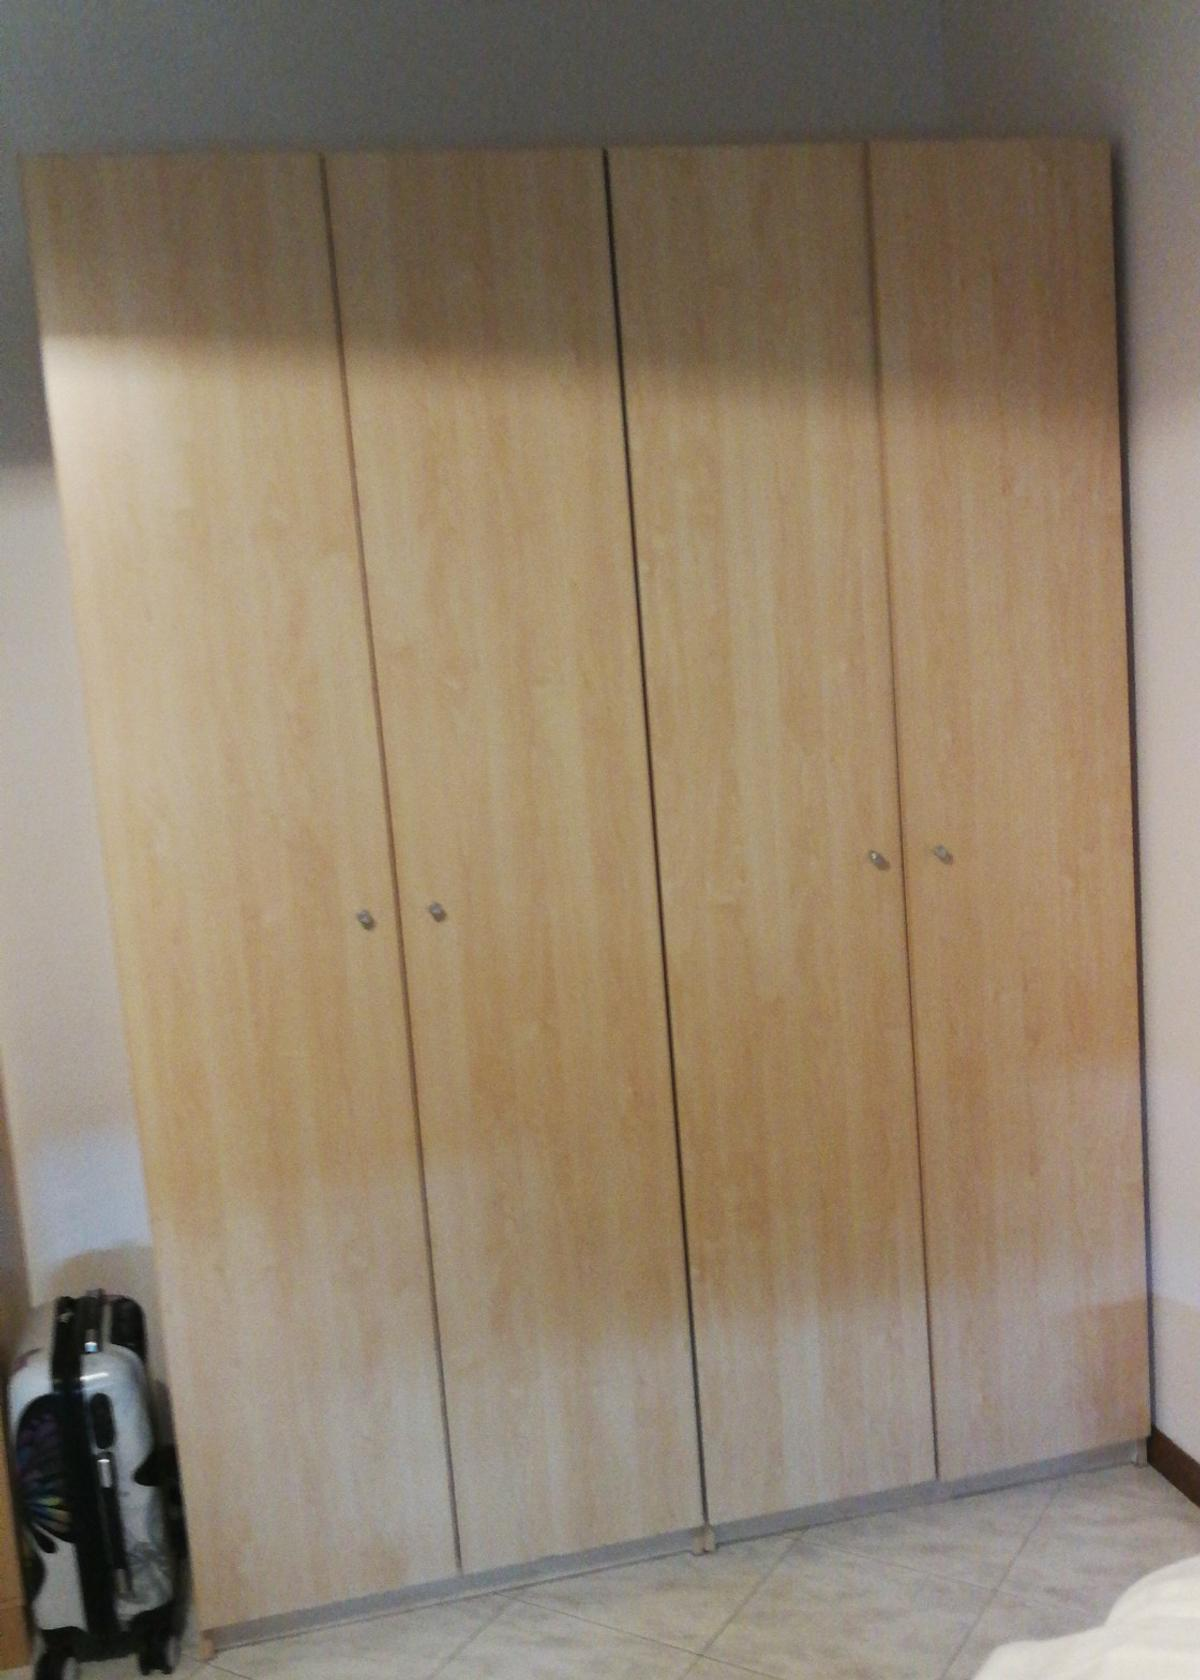 Armadio Ikea 4 Ante.Armadio 4 Ante Ikea Perfetto In 00139 Roma For 50 00 For Sale Shpock